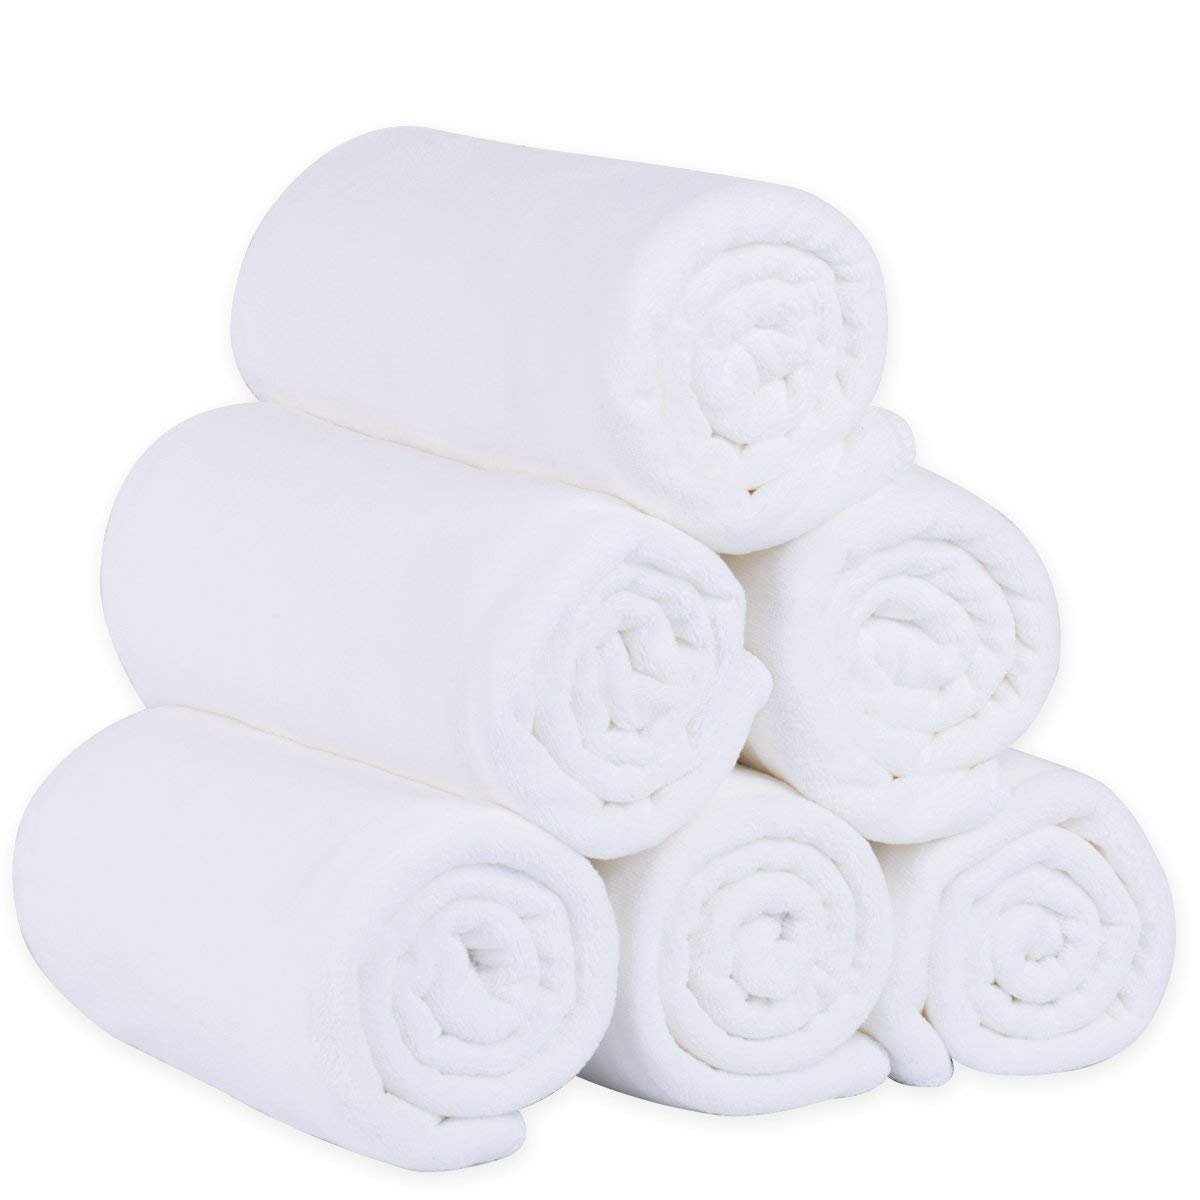 "JML Microfiber Bath Towels, Bath Towel Sets (6 Pack, 27"" x 55"") - Oversized, Extra Absorbent and Fast Drying, Antibacterial, Multipurpose Microfiber Towel for Bath, Beach, Pool, Sports, Yoga - White"